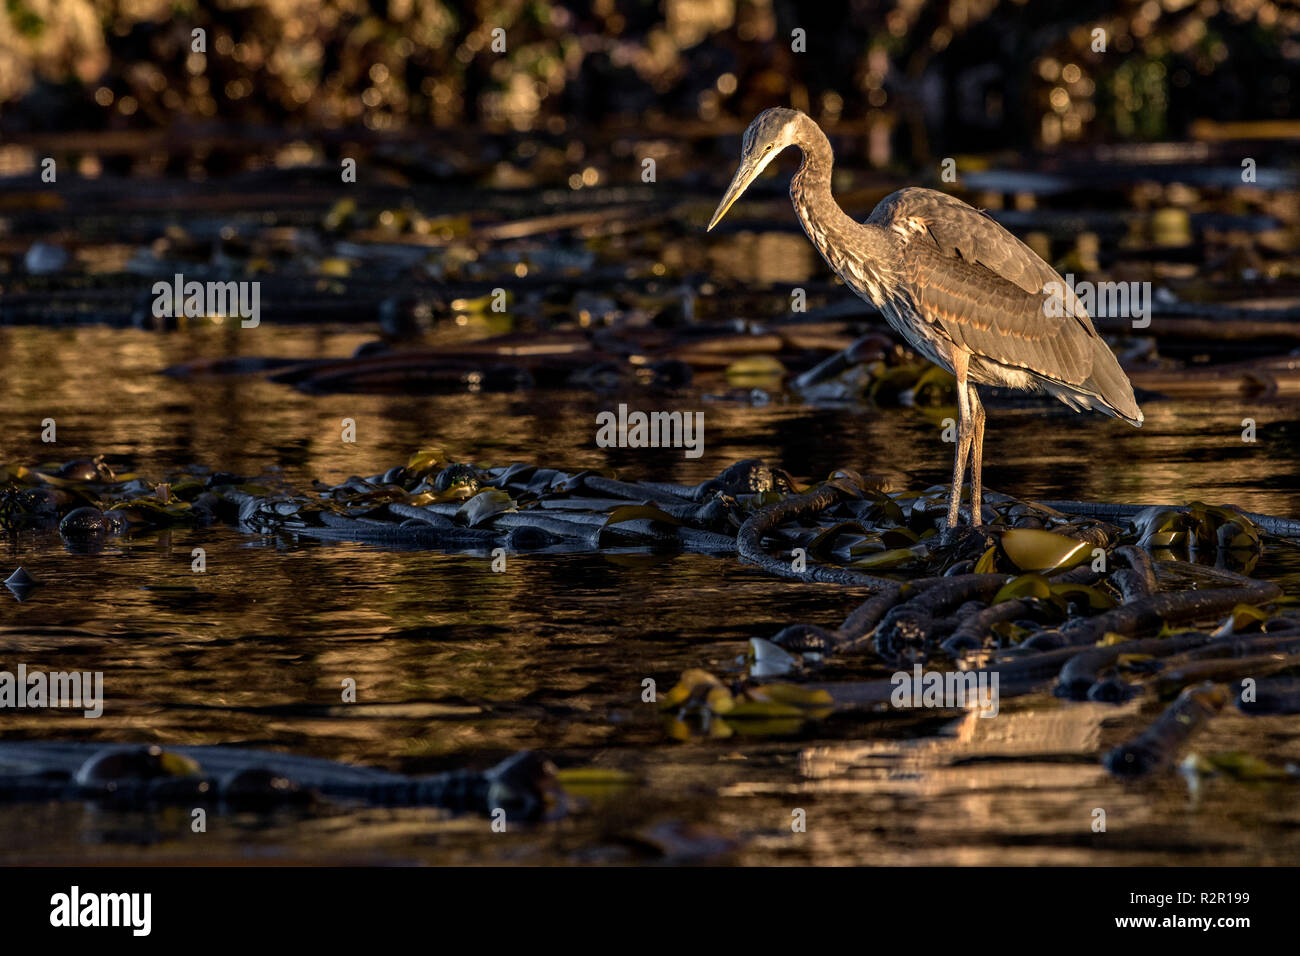 Great Blue Heron (Ardea herodias) waiting patiently on a kelp patch to catch a fish, Broughton Archipelago, First Nations Territory, British Columbia, Canada - Stock Image